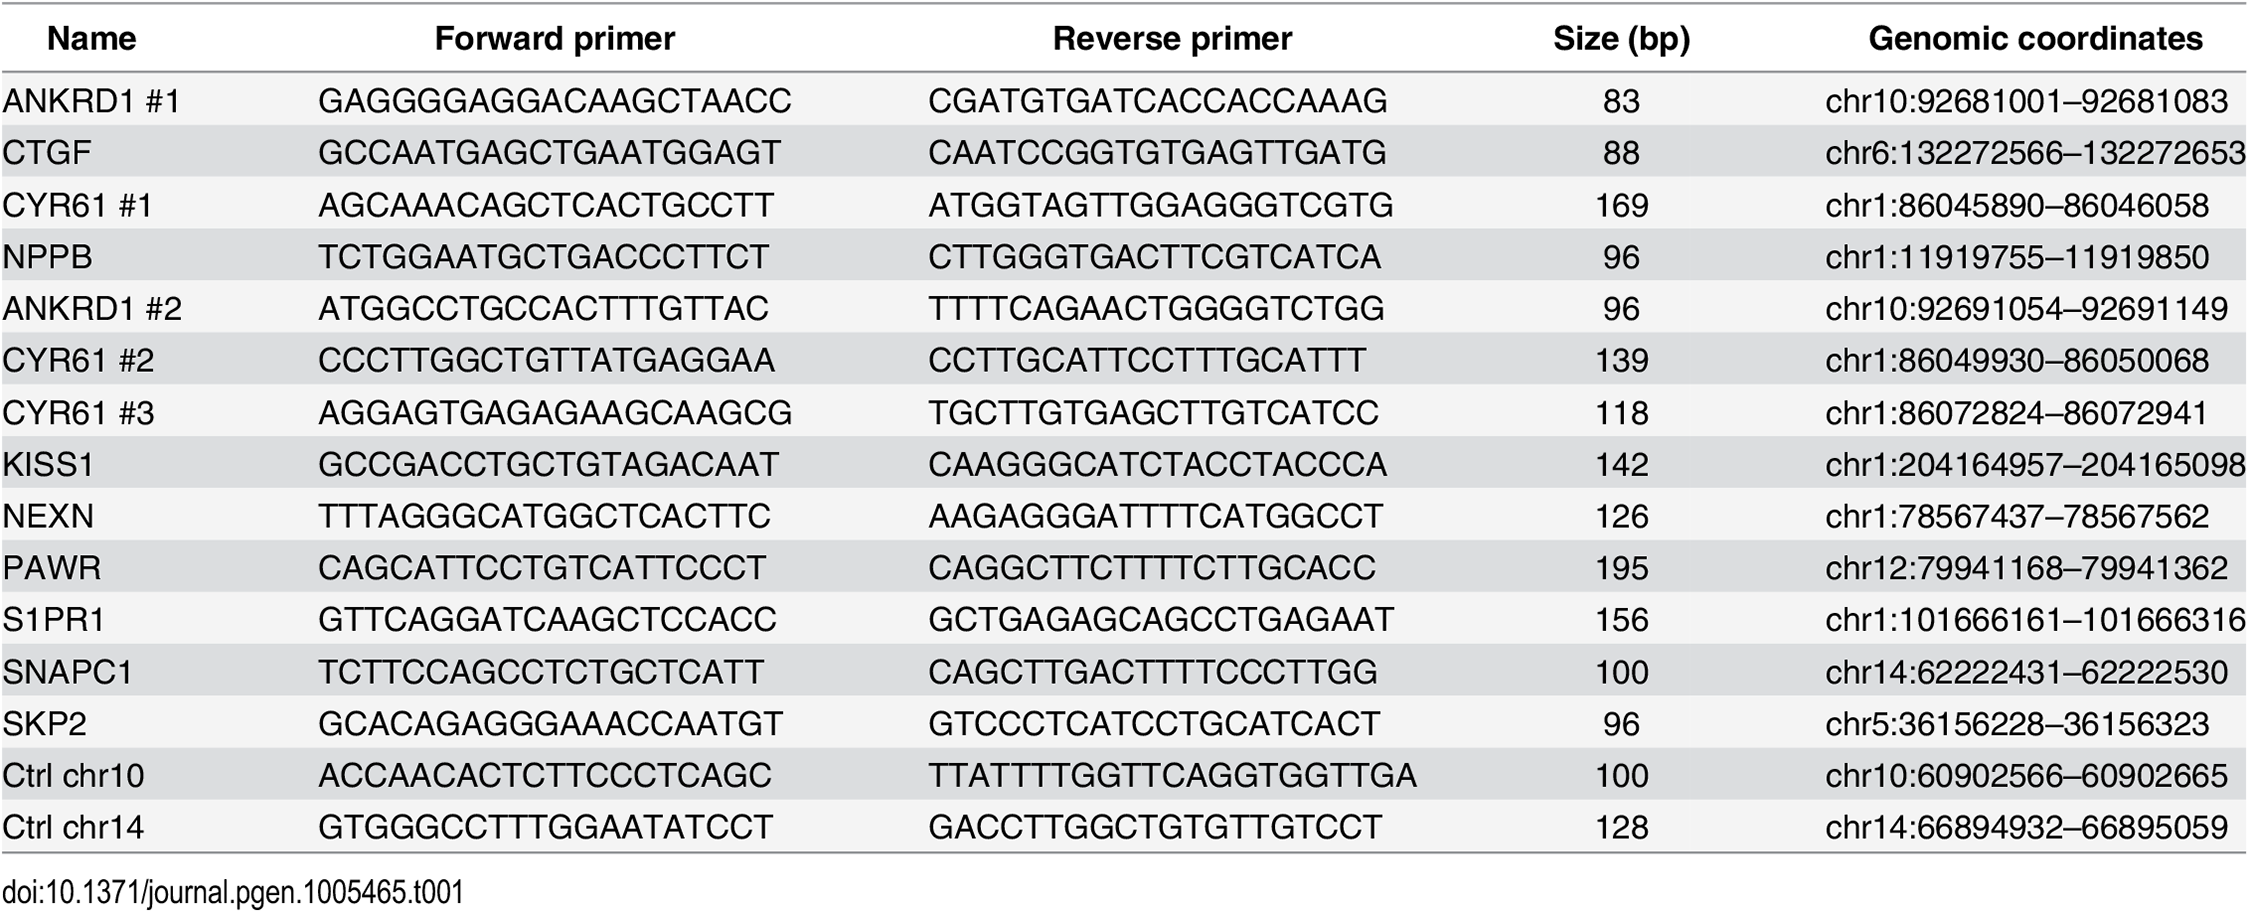 Primers used for ChIP-qPCR.